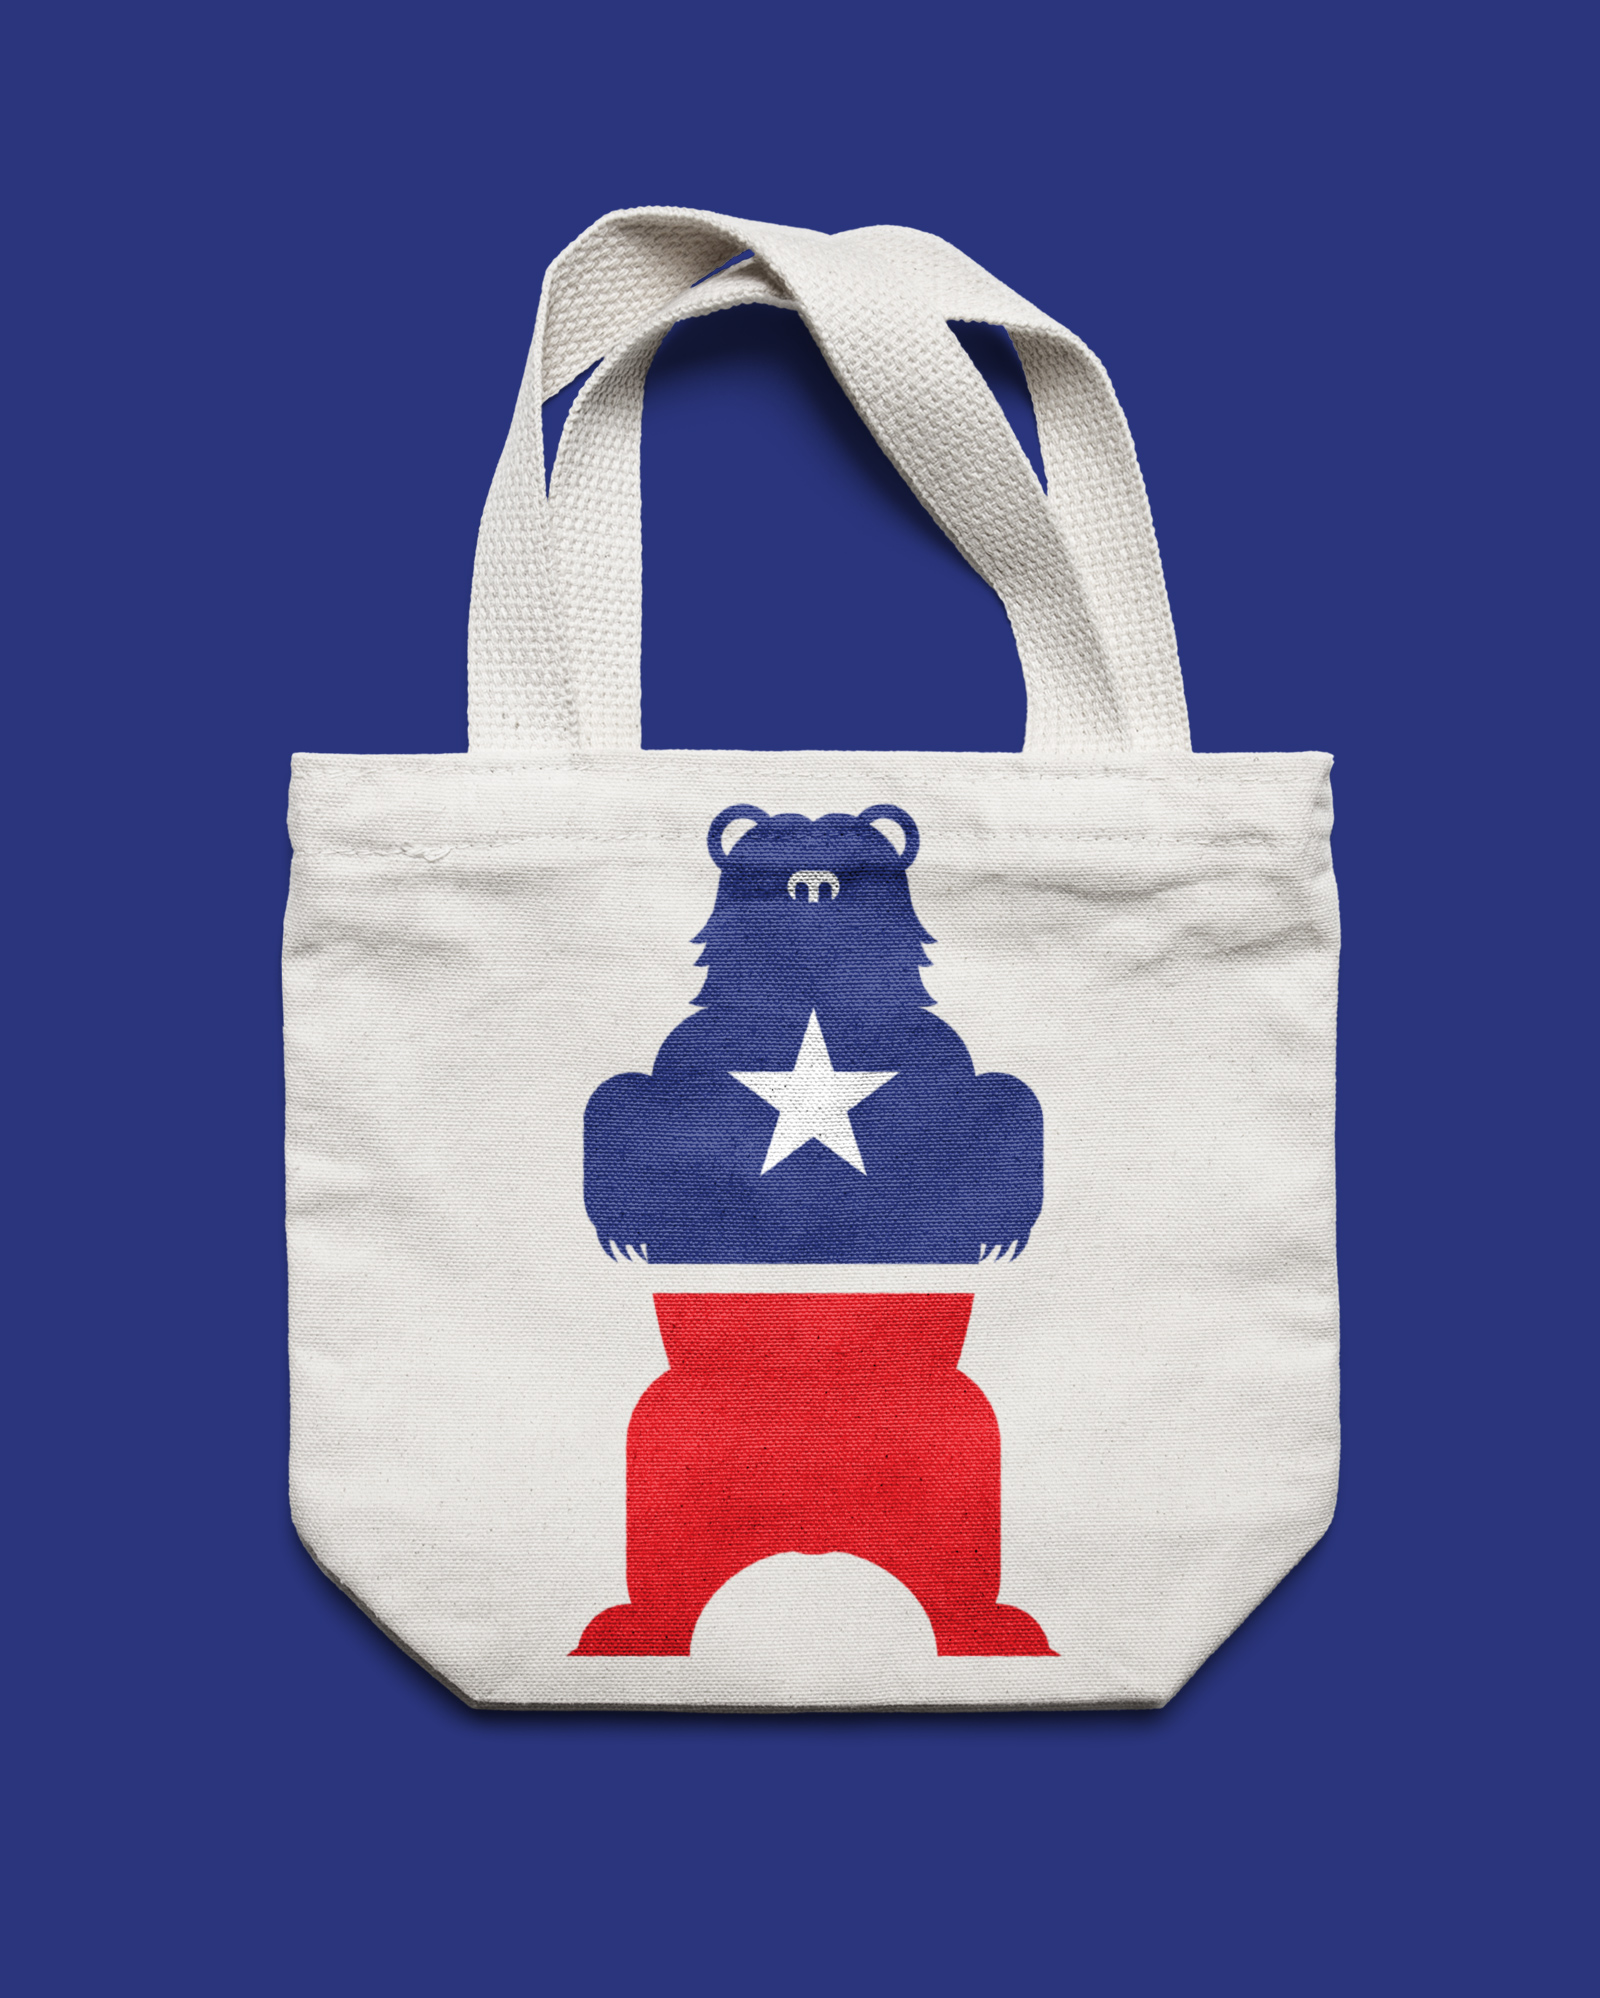 We Need More Party Animals tote bag with a bear on it and blue and red colors